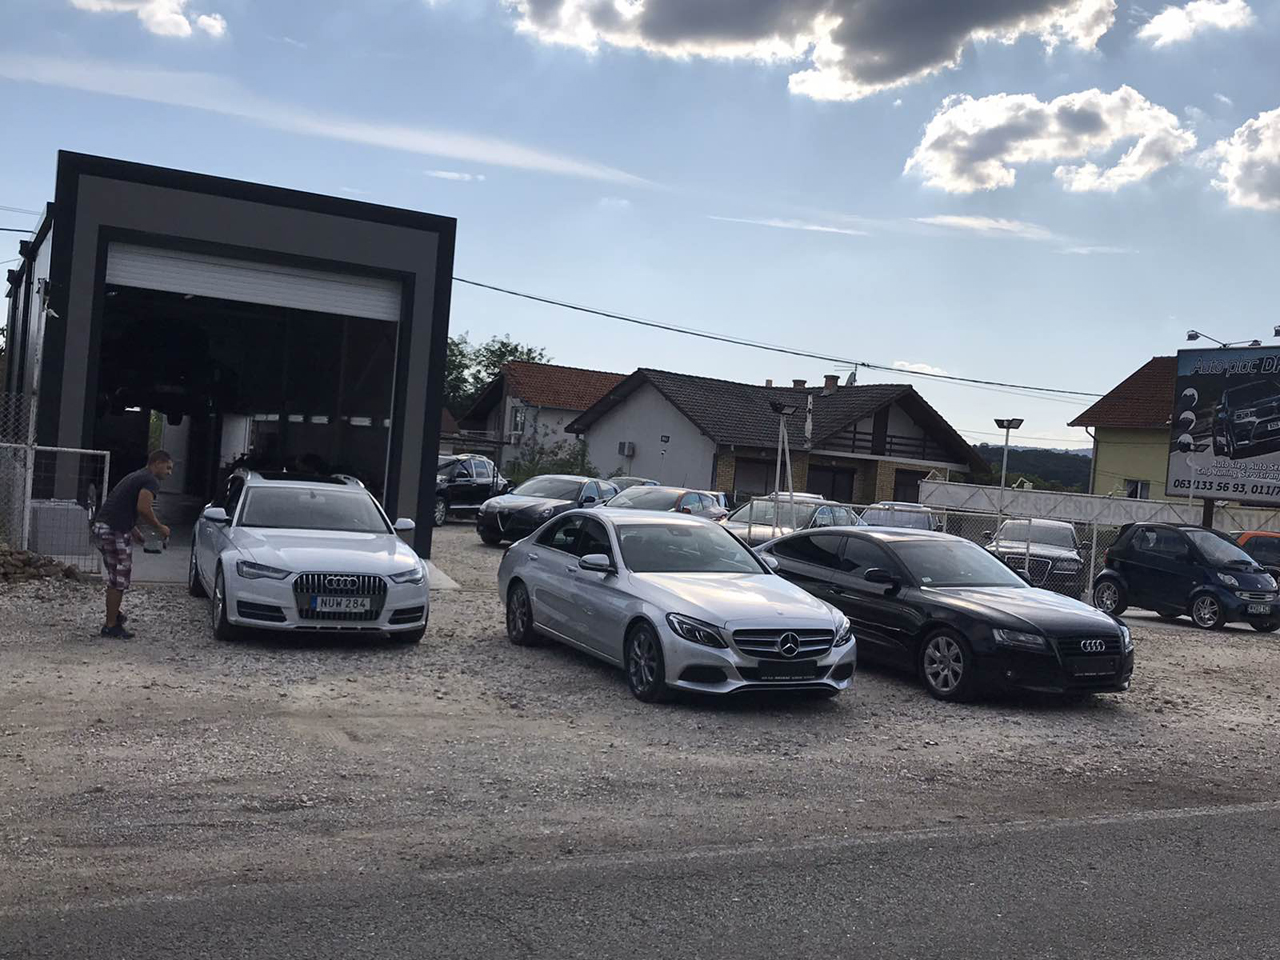 CAR LOT AND CAR SERVICE DROBAC Tire repair Mladenovac - Photo 2